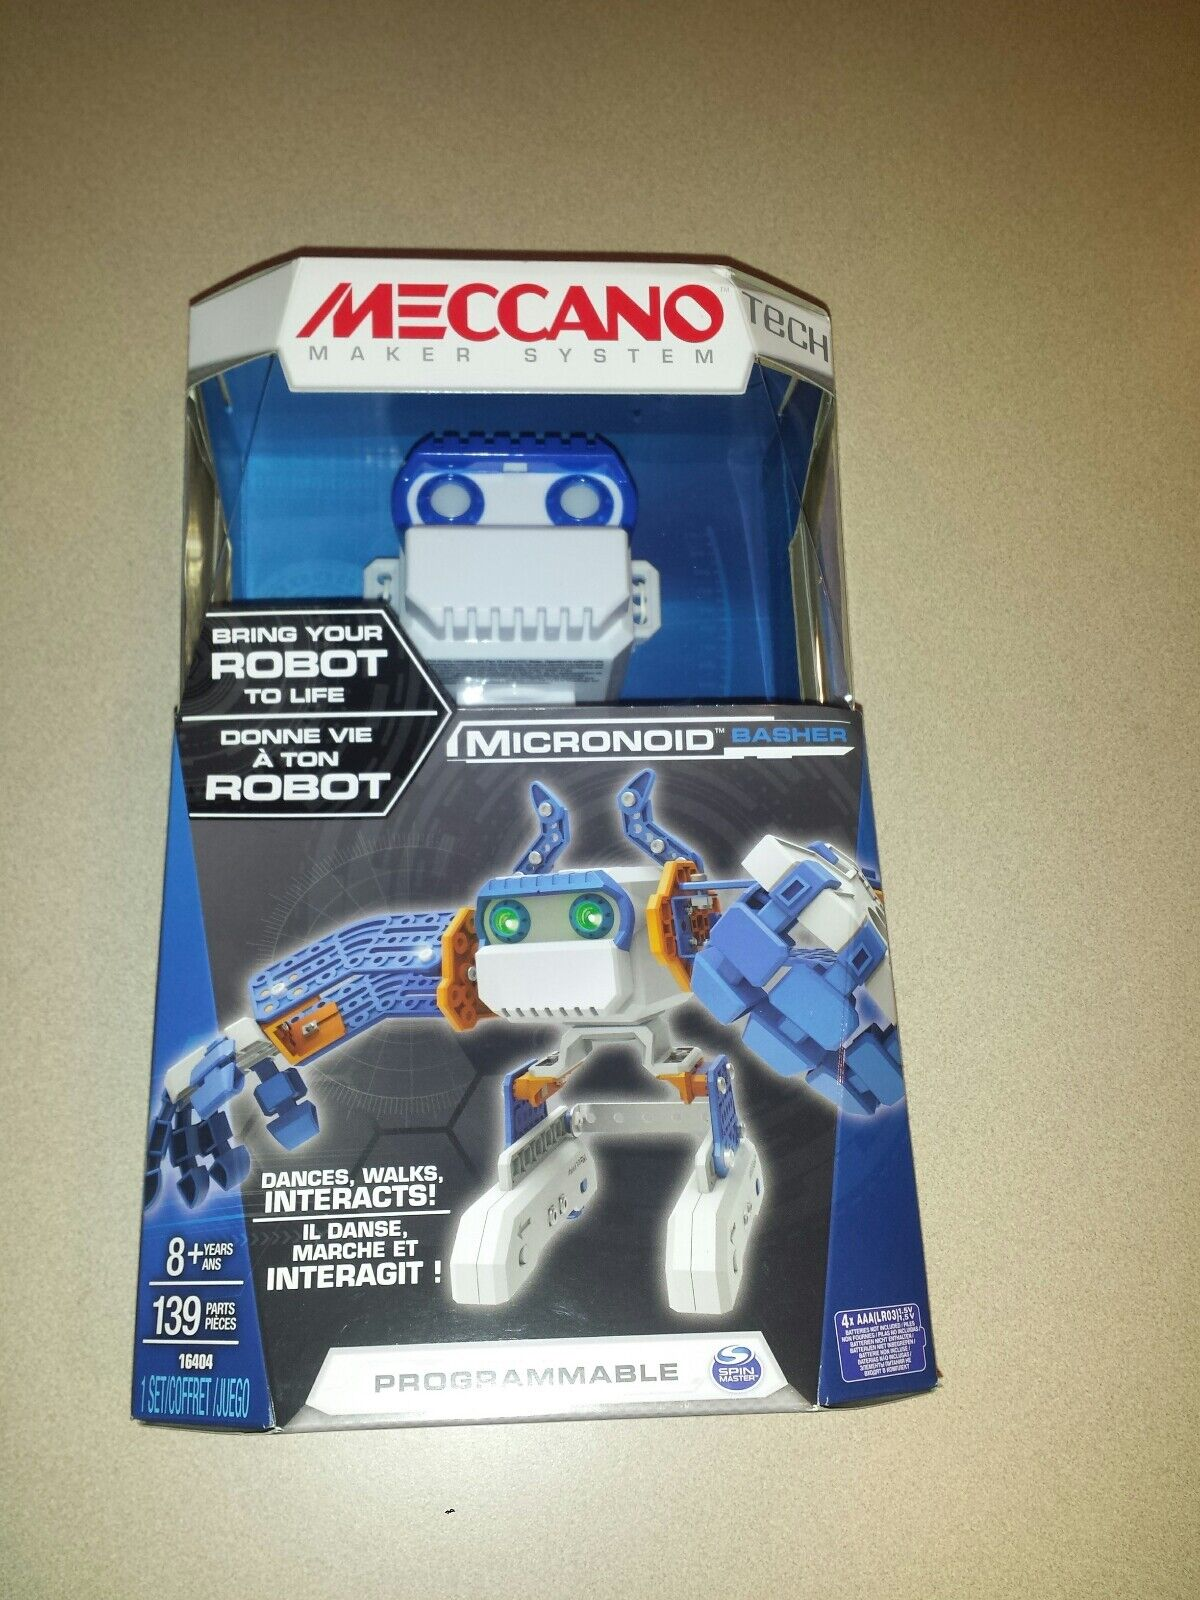 Meccano Micronoid bluee Basher  Programmable Bring Robot To Life NEW EASTER